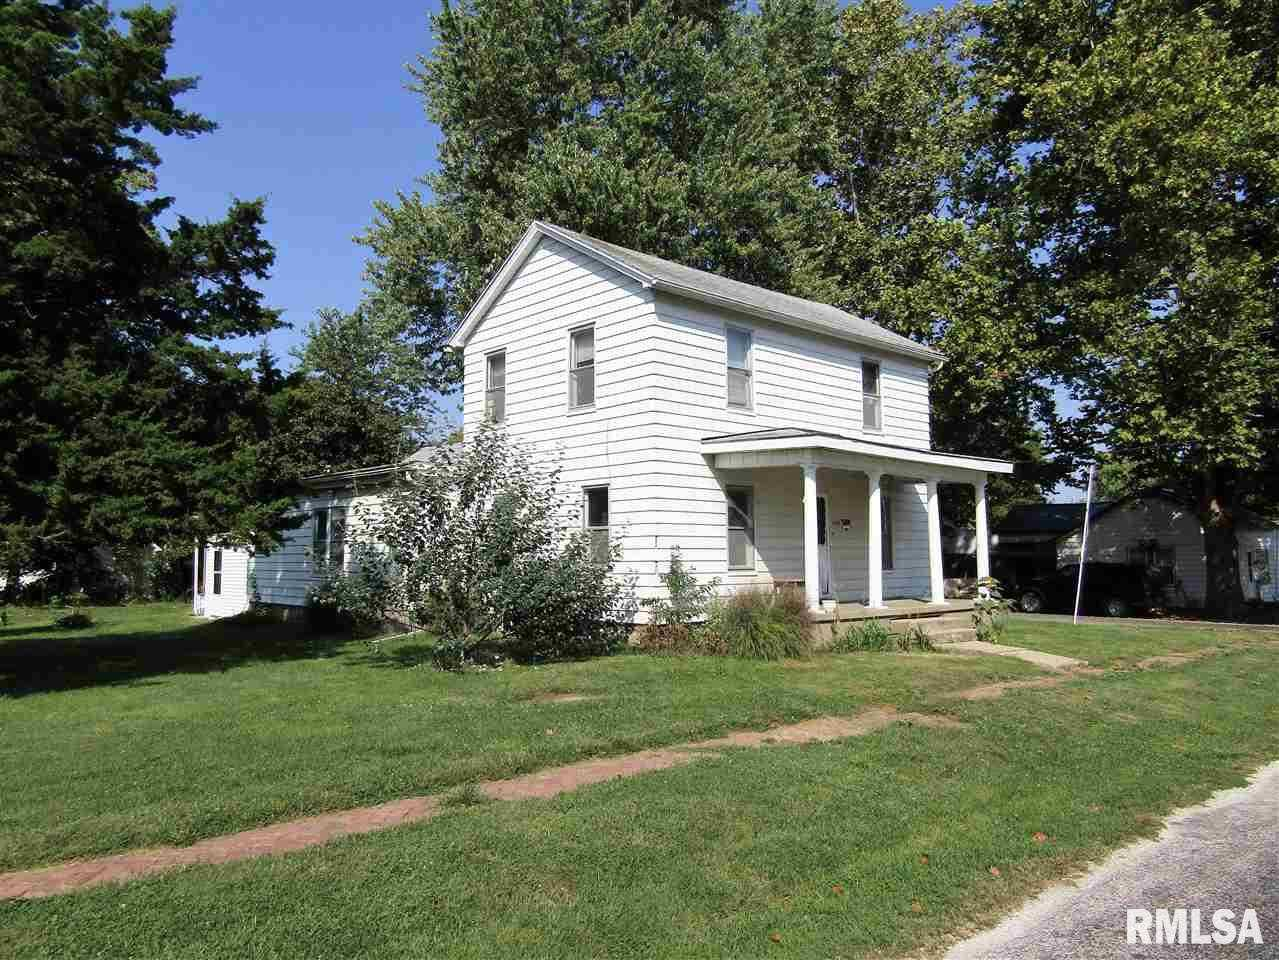 $46,500 - 4Br/2Ba -  for Sale in Viets, Lewistown